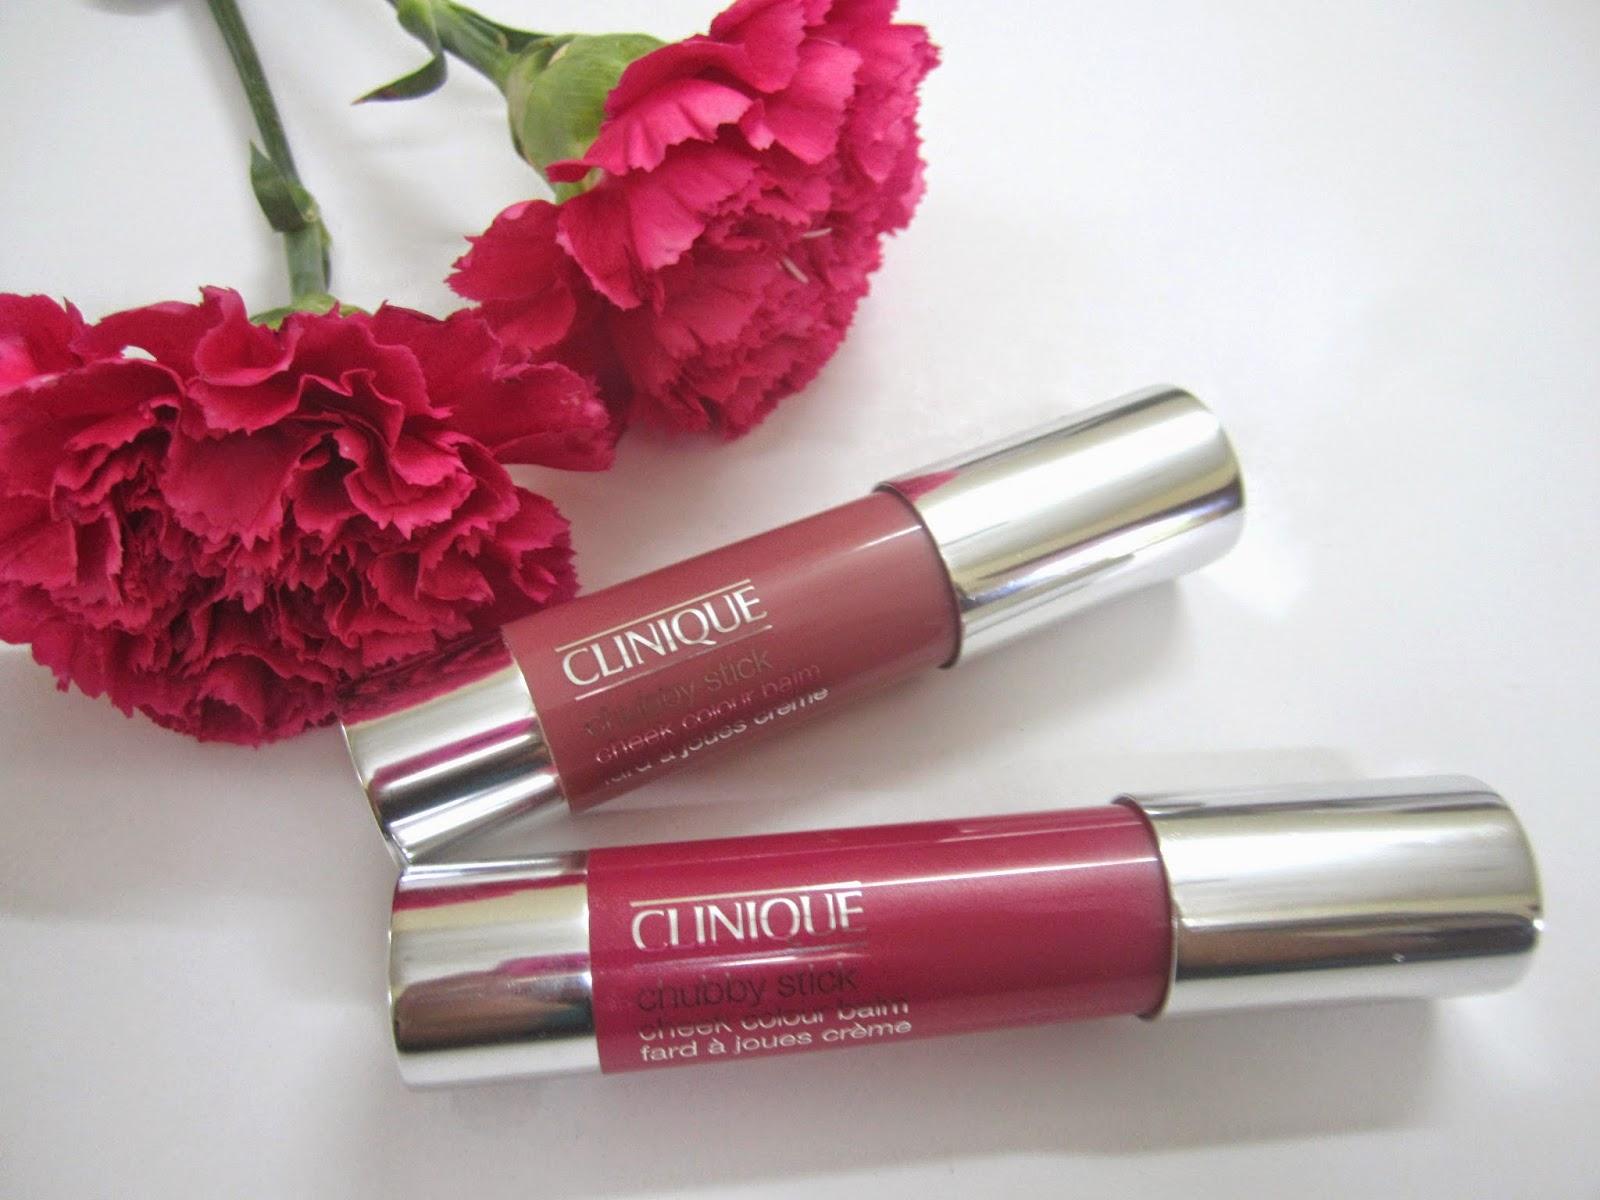 Clinique Chubby Stick Cheek Colour Balm - amp'd up apple(01) & roly poly rosy(03)